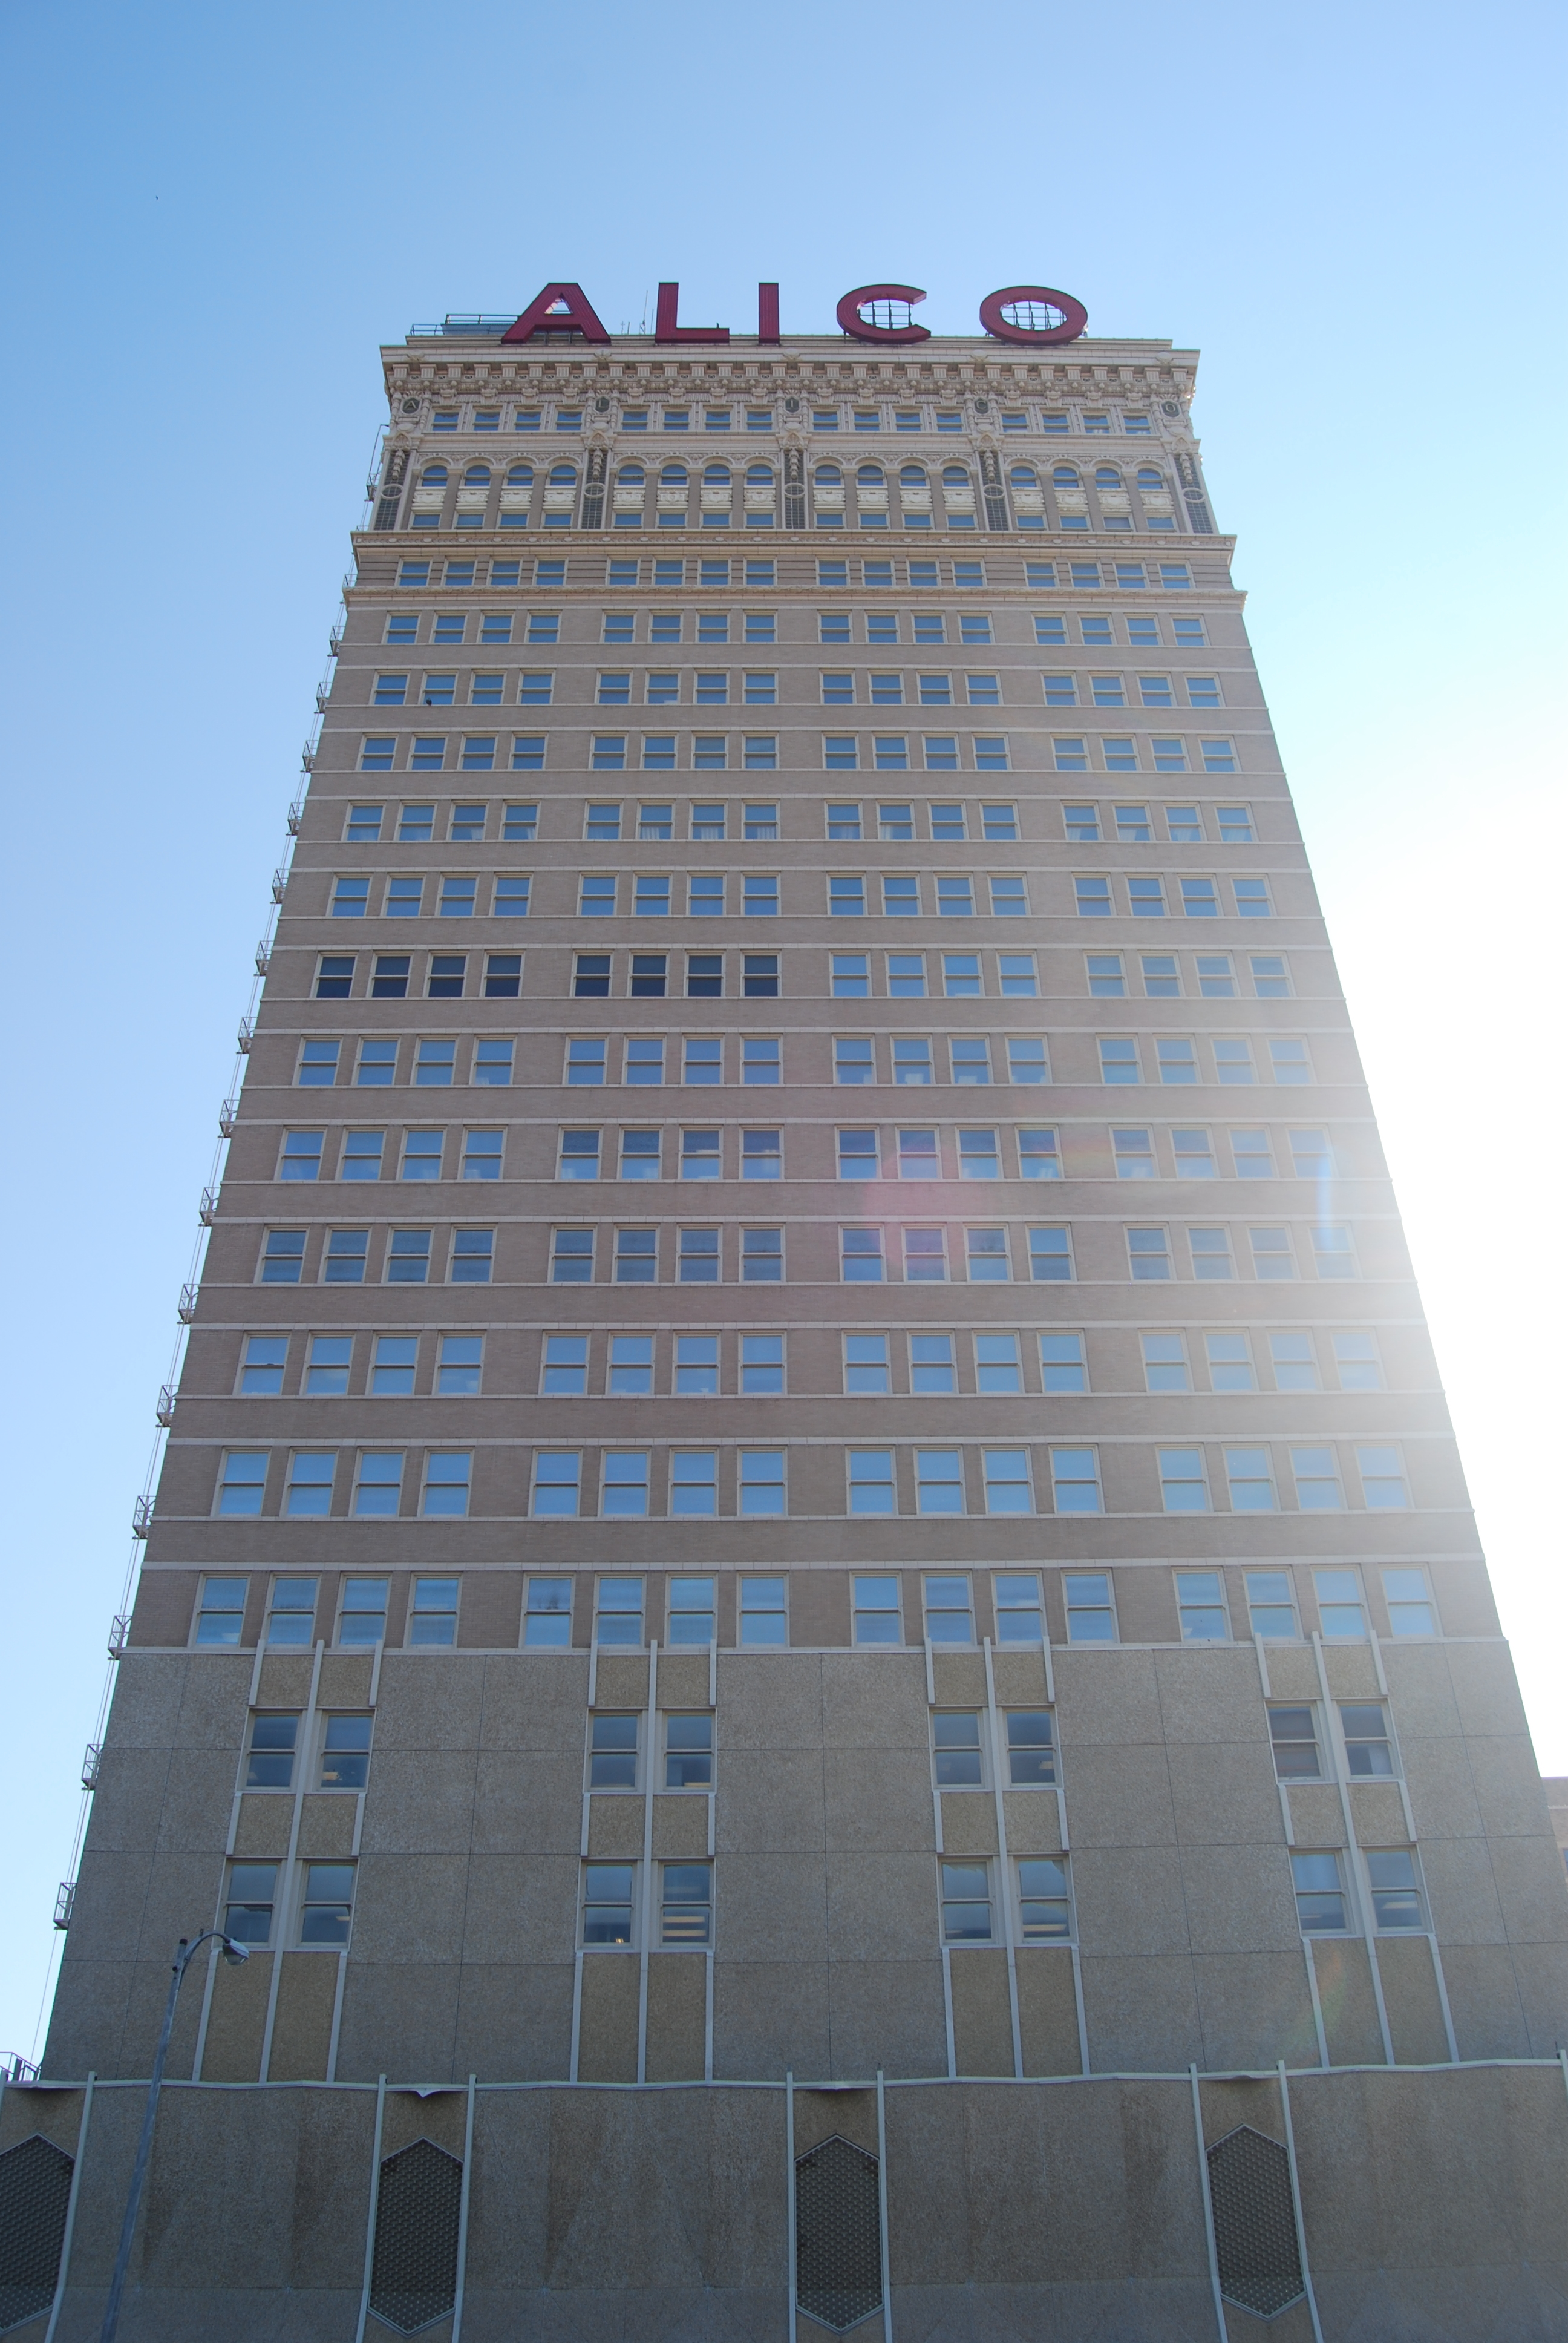 The ALICO Building towers over the Waco skies. Credit to Kimbo for the picture.